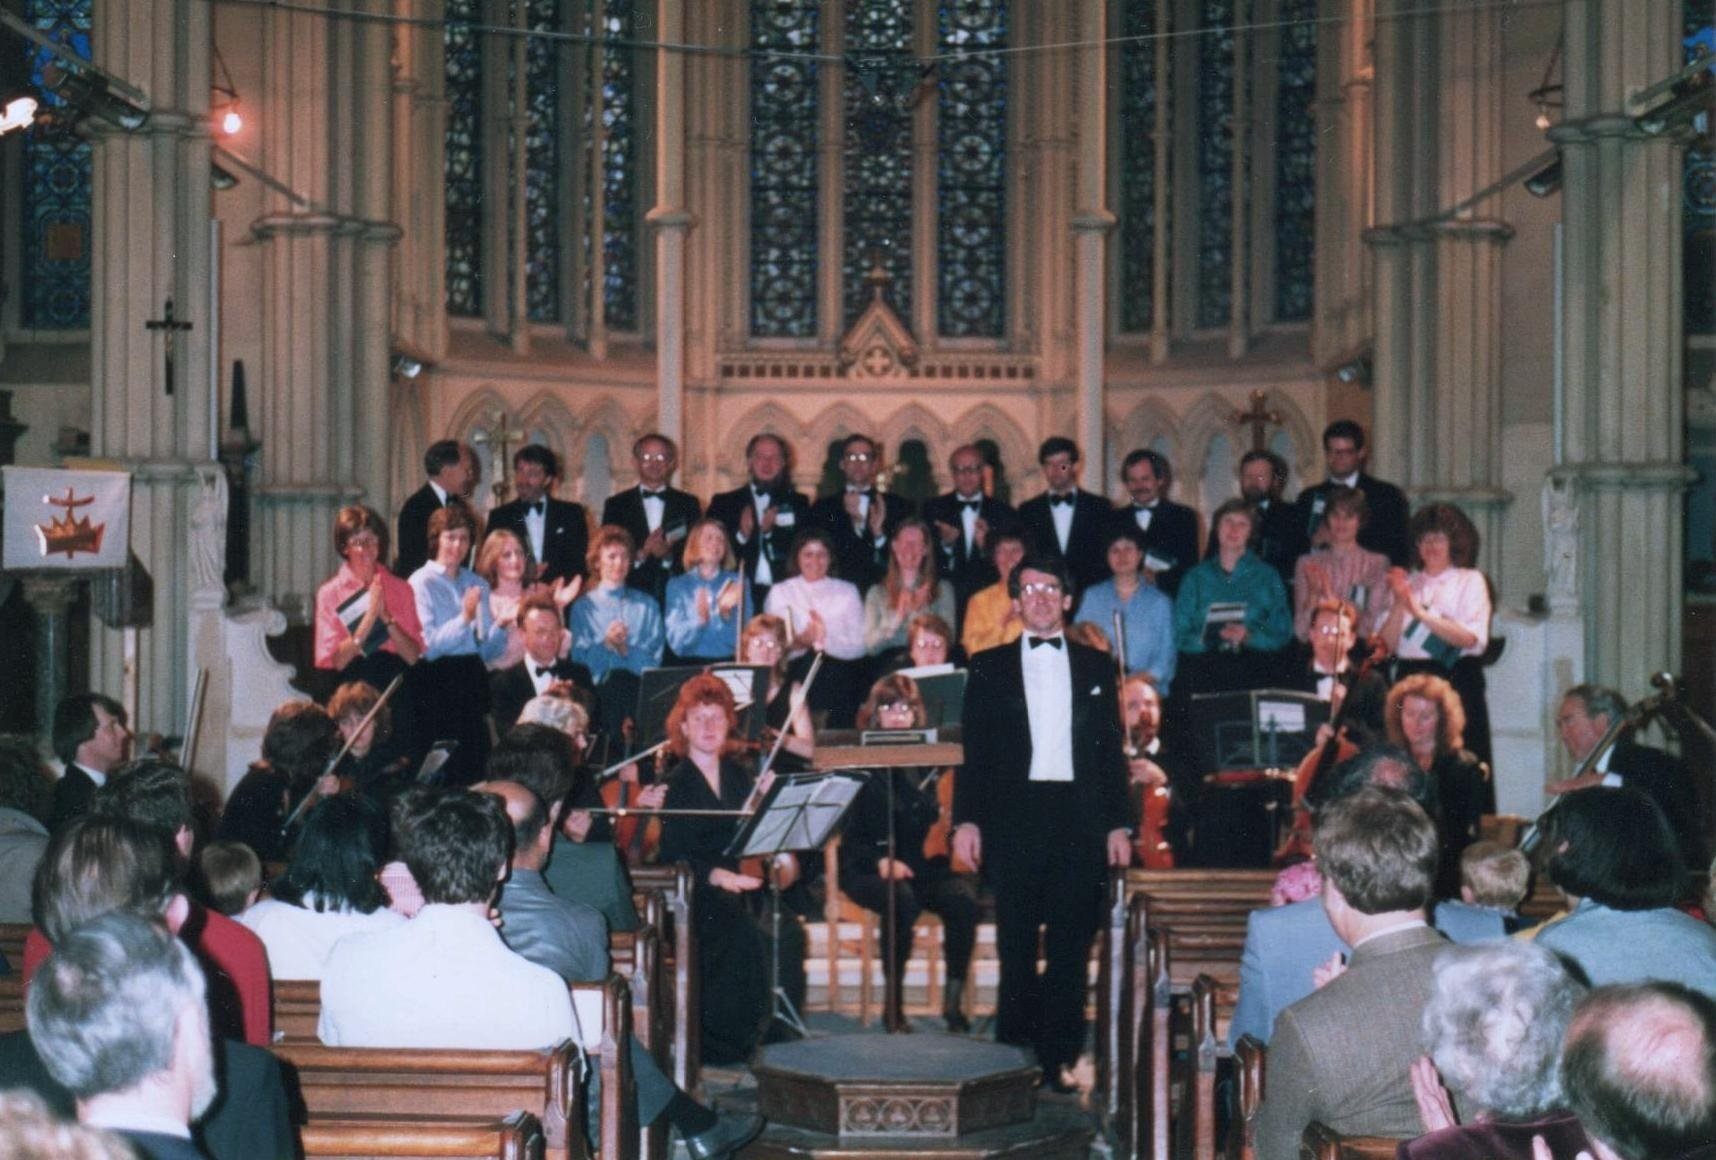 With Le Corde orchestra at St Mary's, Andover (July 1988)